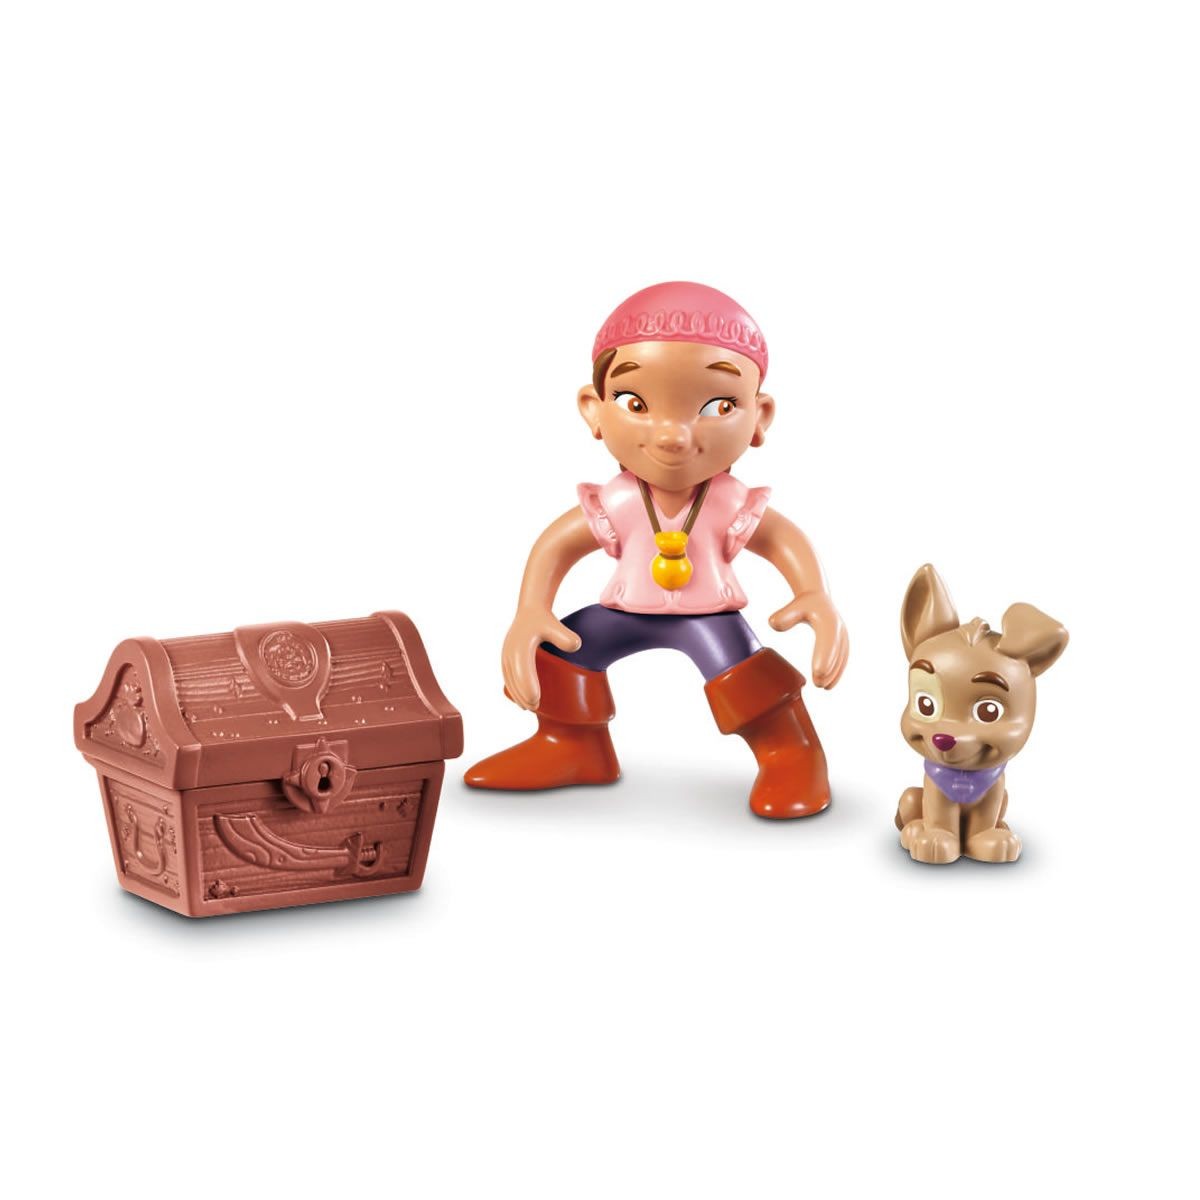 Izzy & Patch figure pack